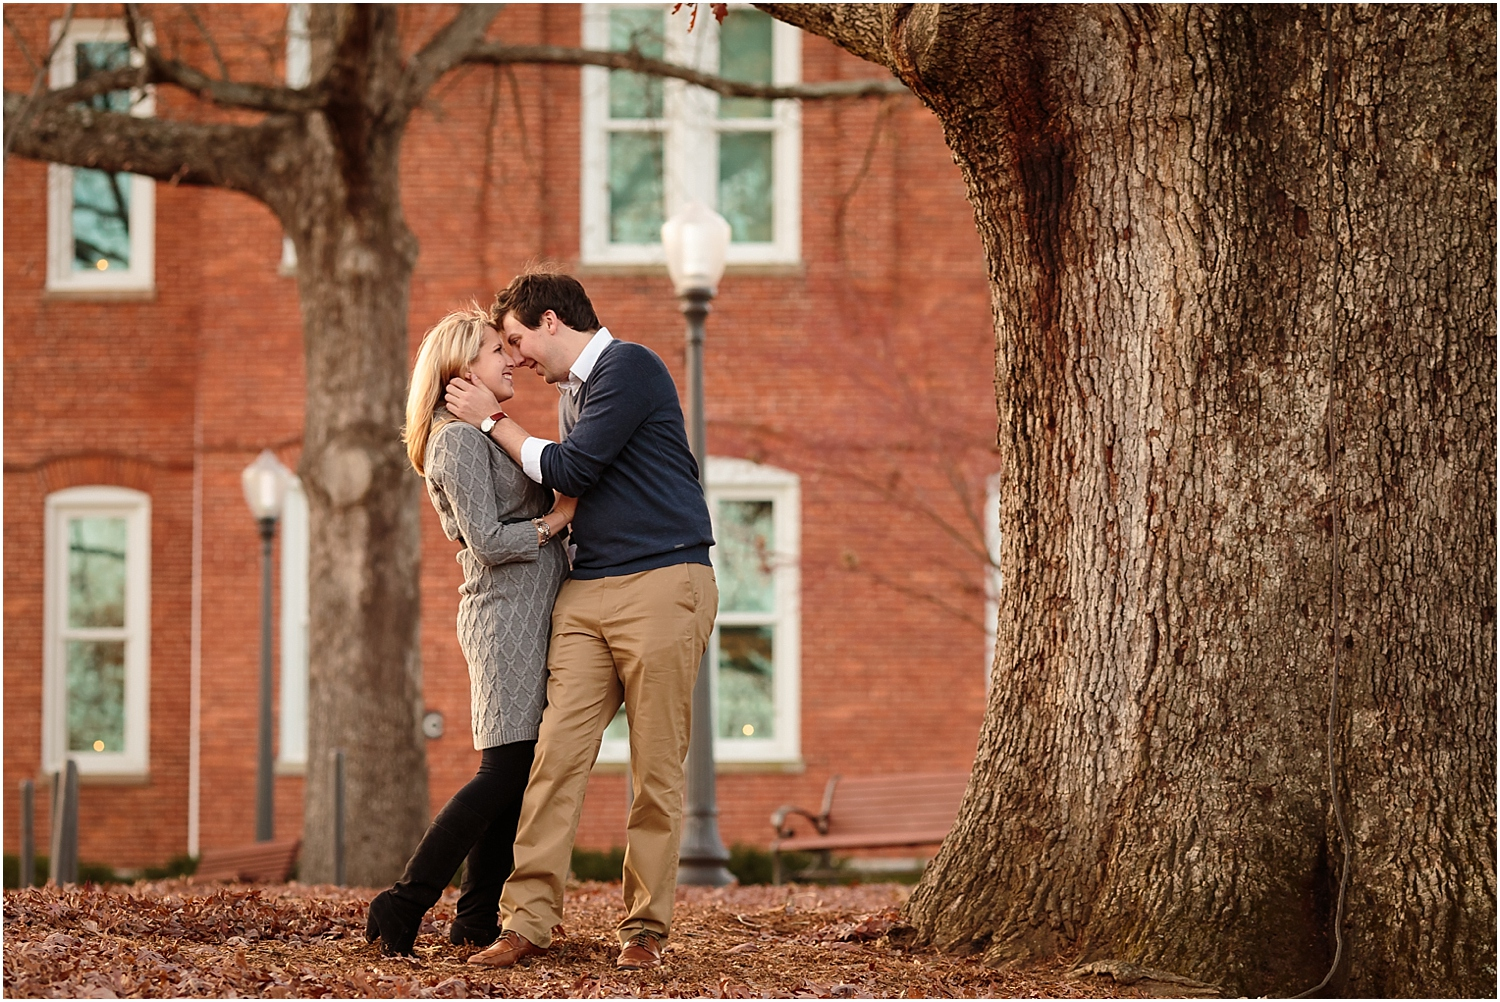 141207--0259clemson-engagement-shoot_blog.jpg